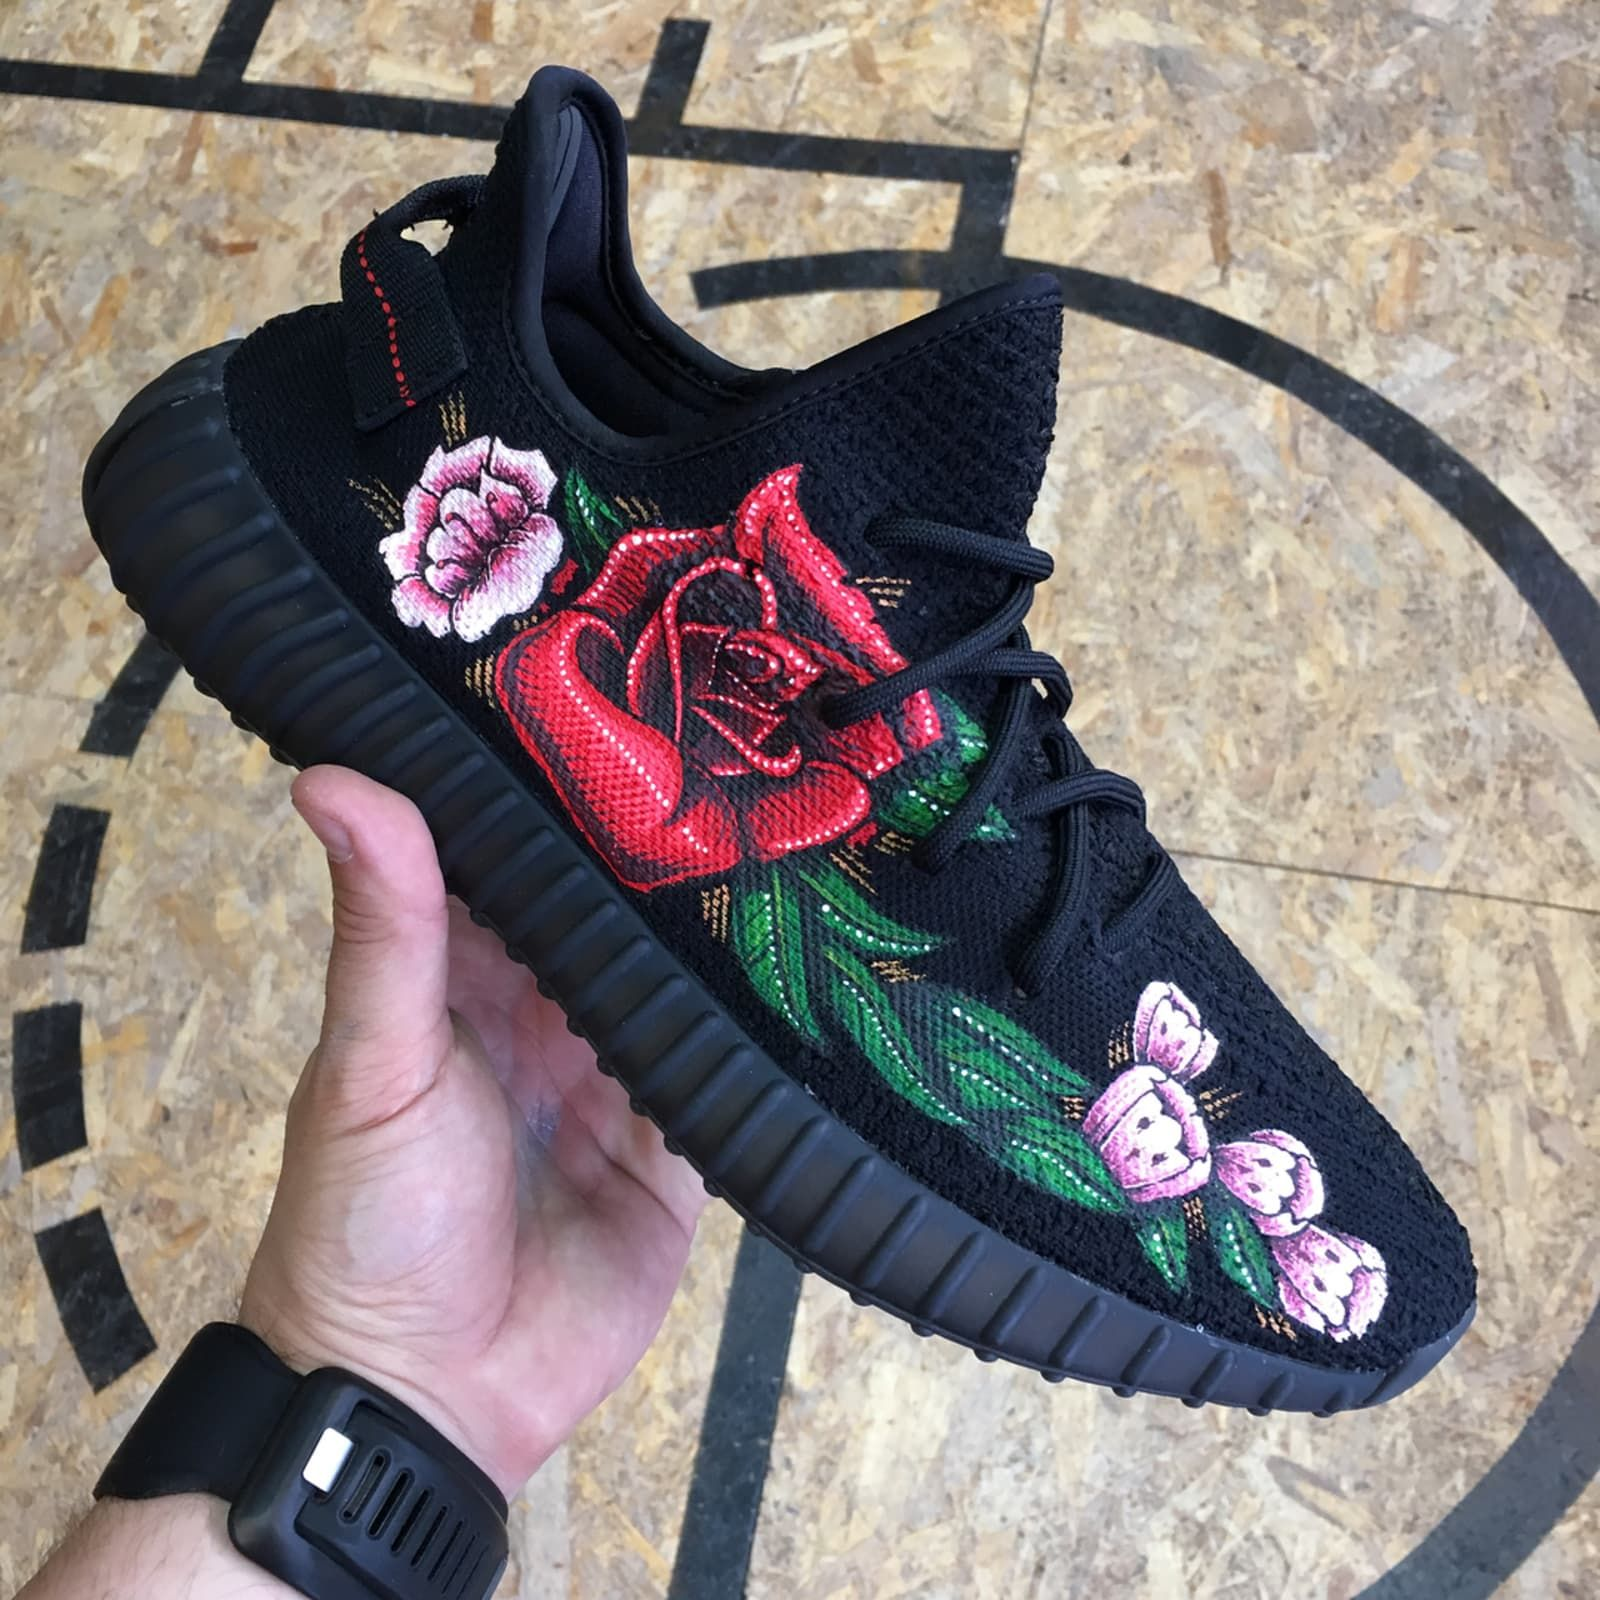 36d41e8be Adidas Yeezy 350 Boost V2 Customs: Flowers by MelonKicks - The Best Adidas  Yeezy 350 Boost V2 Customs | Sole Collector